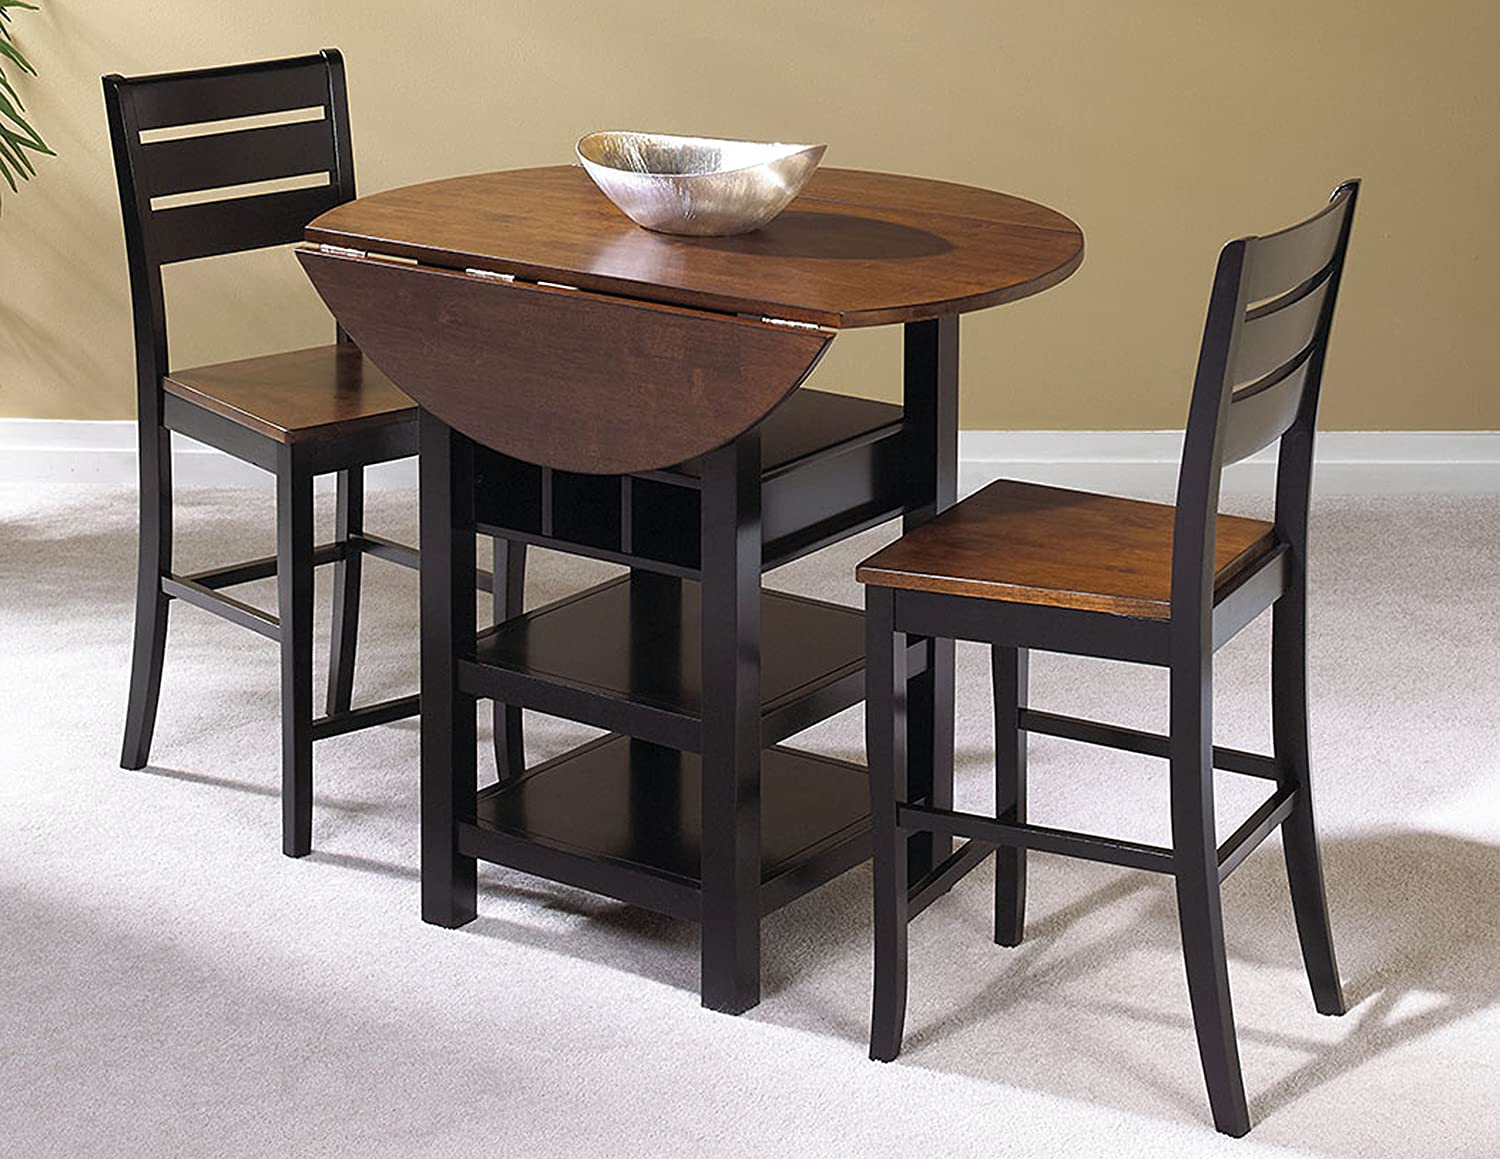 Amazon.com Sunset Trading 3 Piece Quincy Drop Leaf Pub Table Set Kitchen u0026 Dining & Amazon.com: Sunset Trading 3 Piece Quincy Drop Leaf Pub Table Set ...